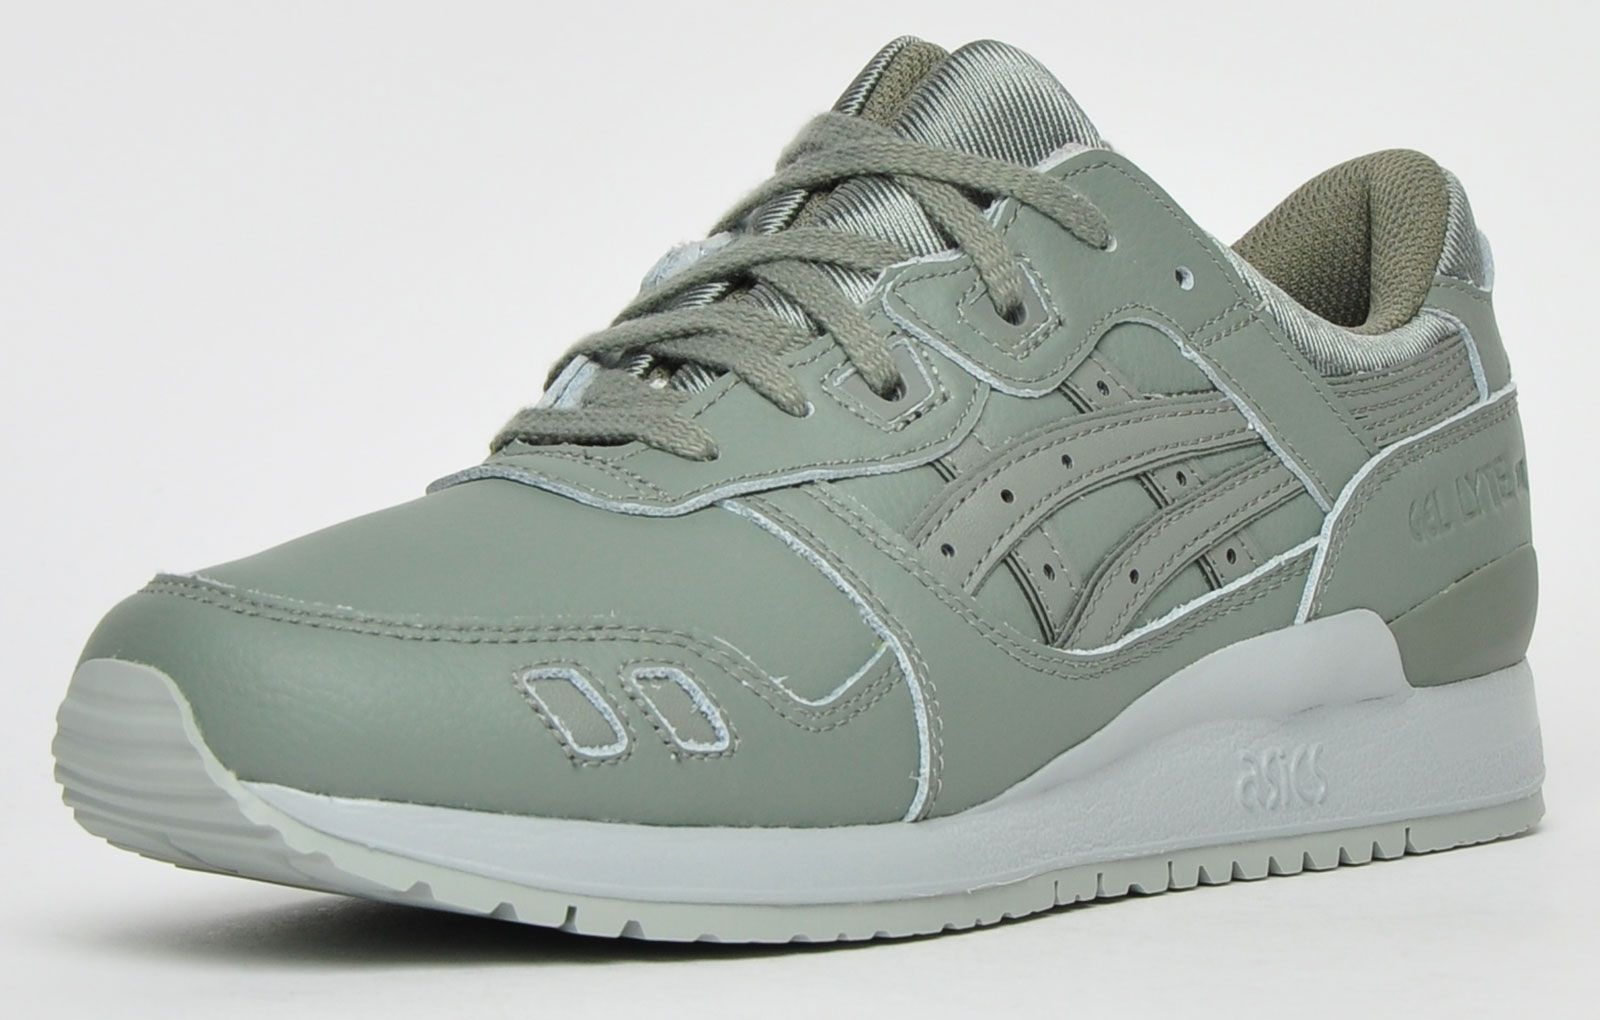 Asics Tiger Gel-Lyte III Leather Mens